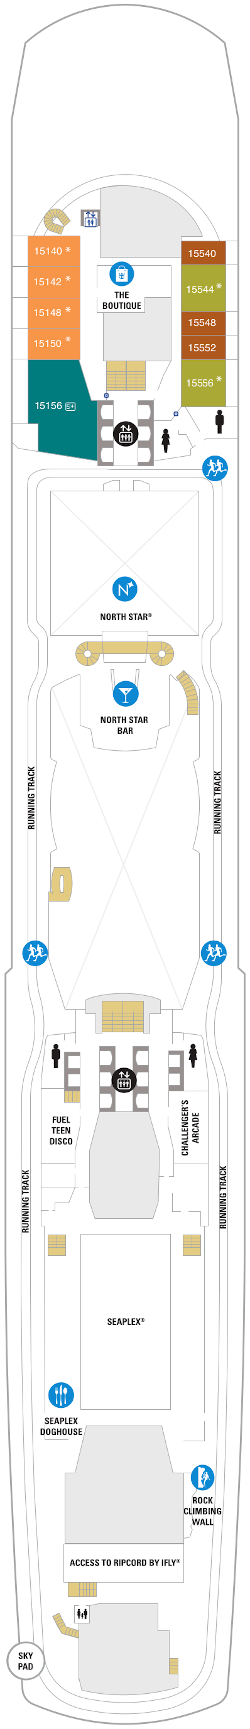 Spectrum Of The Seas Deck Fifteen Deck Plan